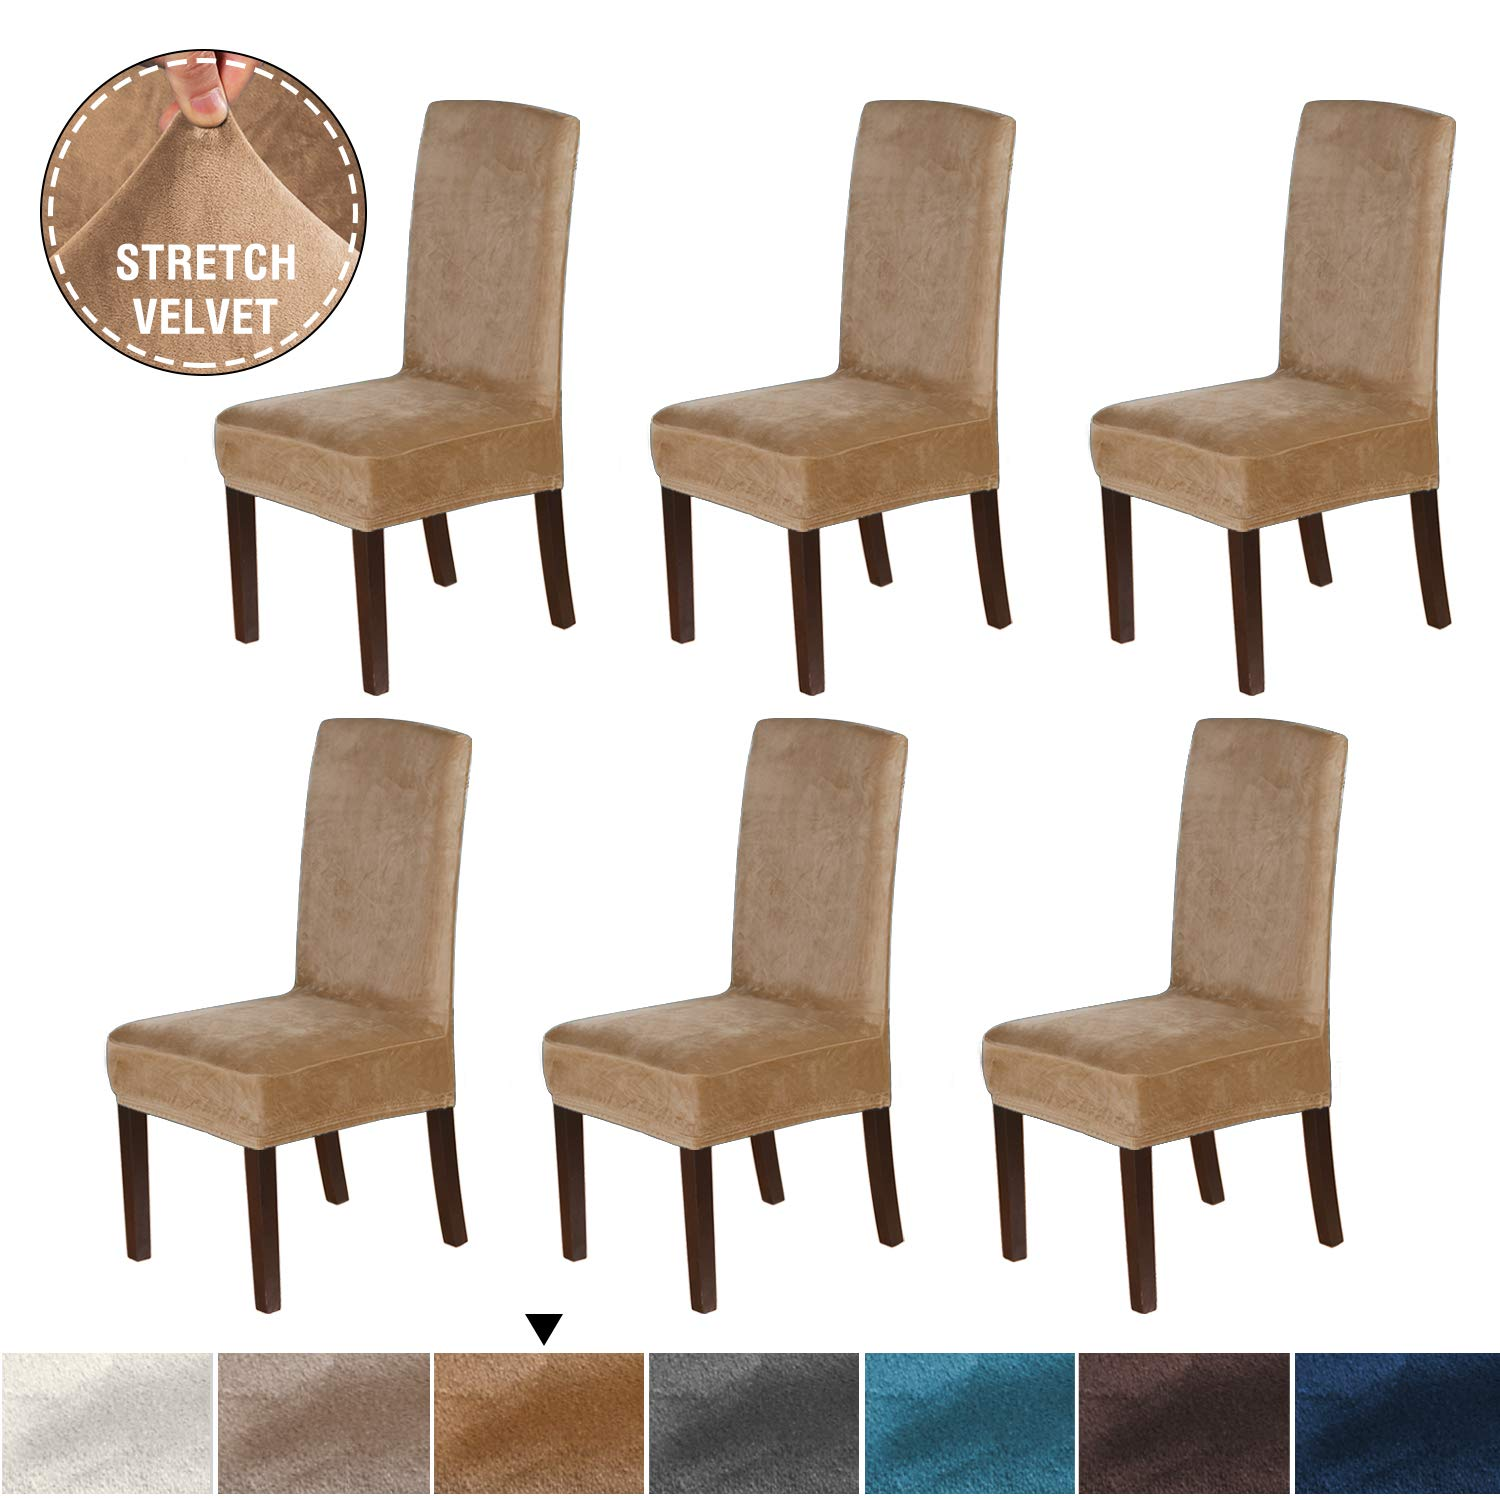 H.VERSAILTEX Armless Dining Chair Slip Covers for Dining Room Velvet Plush Dining Room Chair Slipcovers Sets Washable Removable Chair Slipcover Dining Chair Protector Cover, 6 Pack, Luggage by H.VERSAILTEX